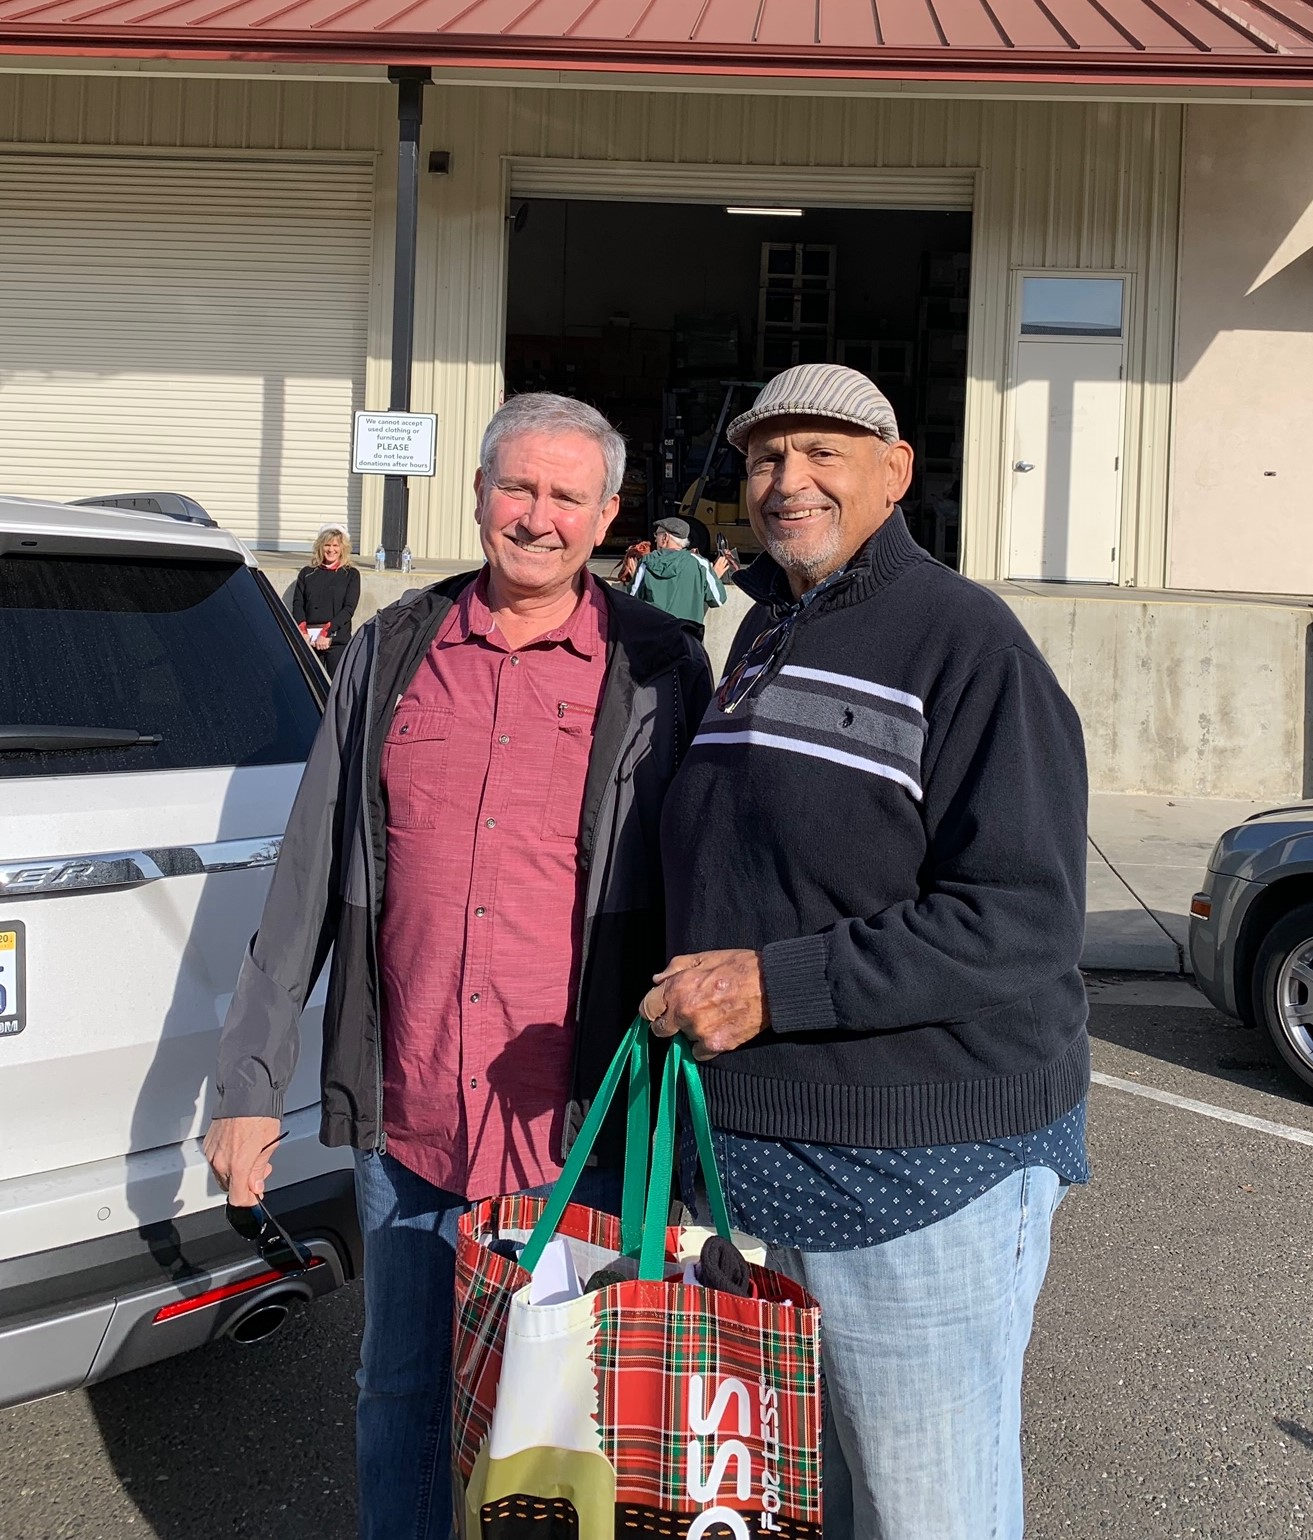 Stockings for Loaves and Fishes SacCountyGOP Delivers